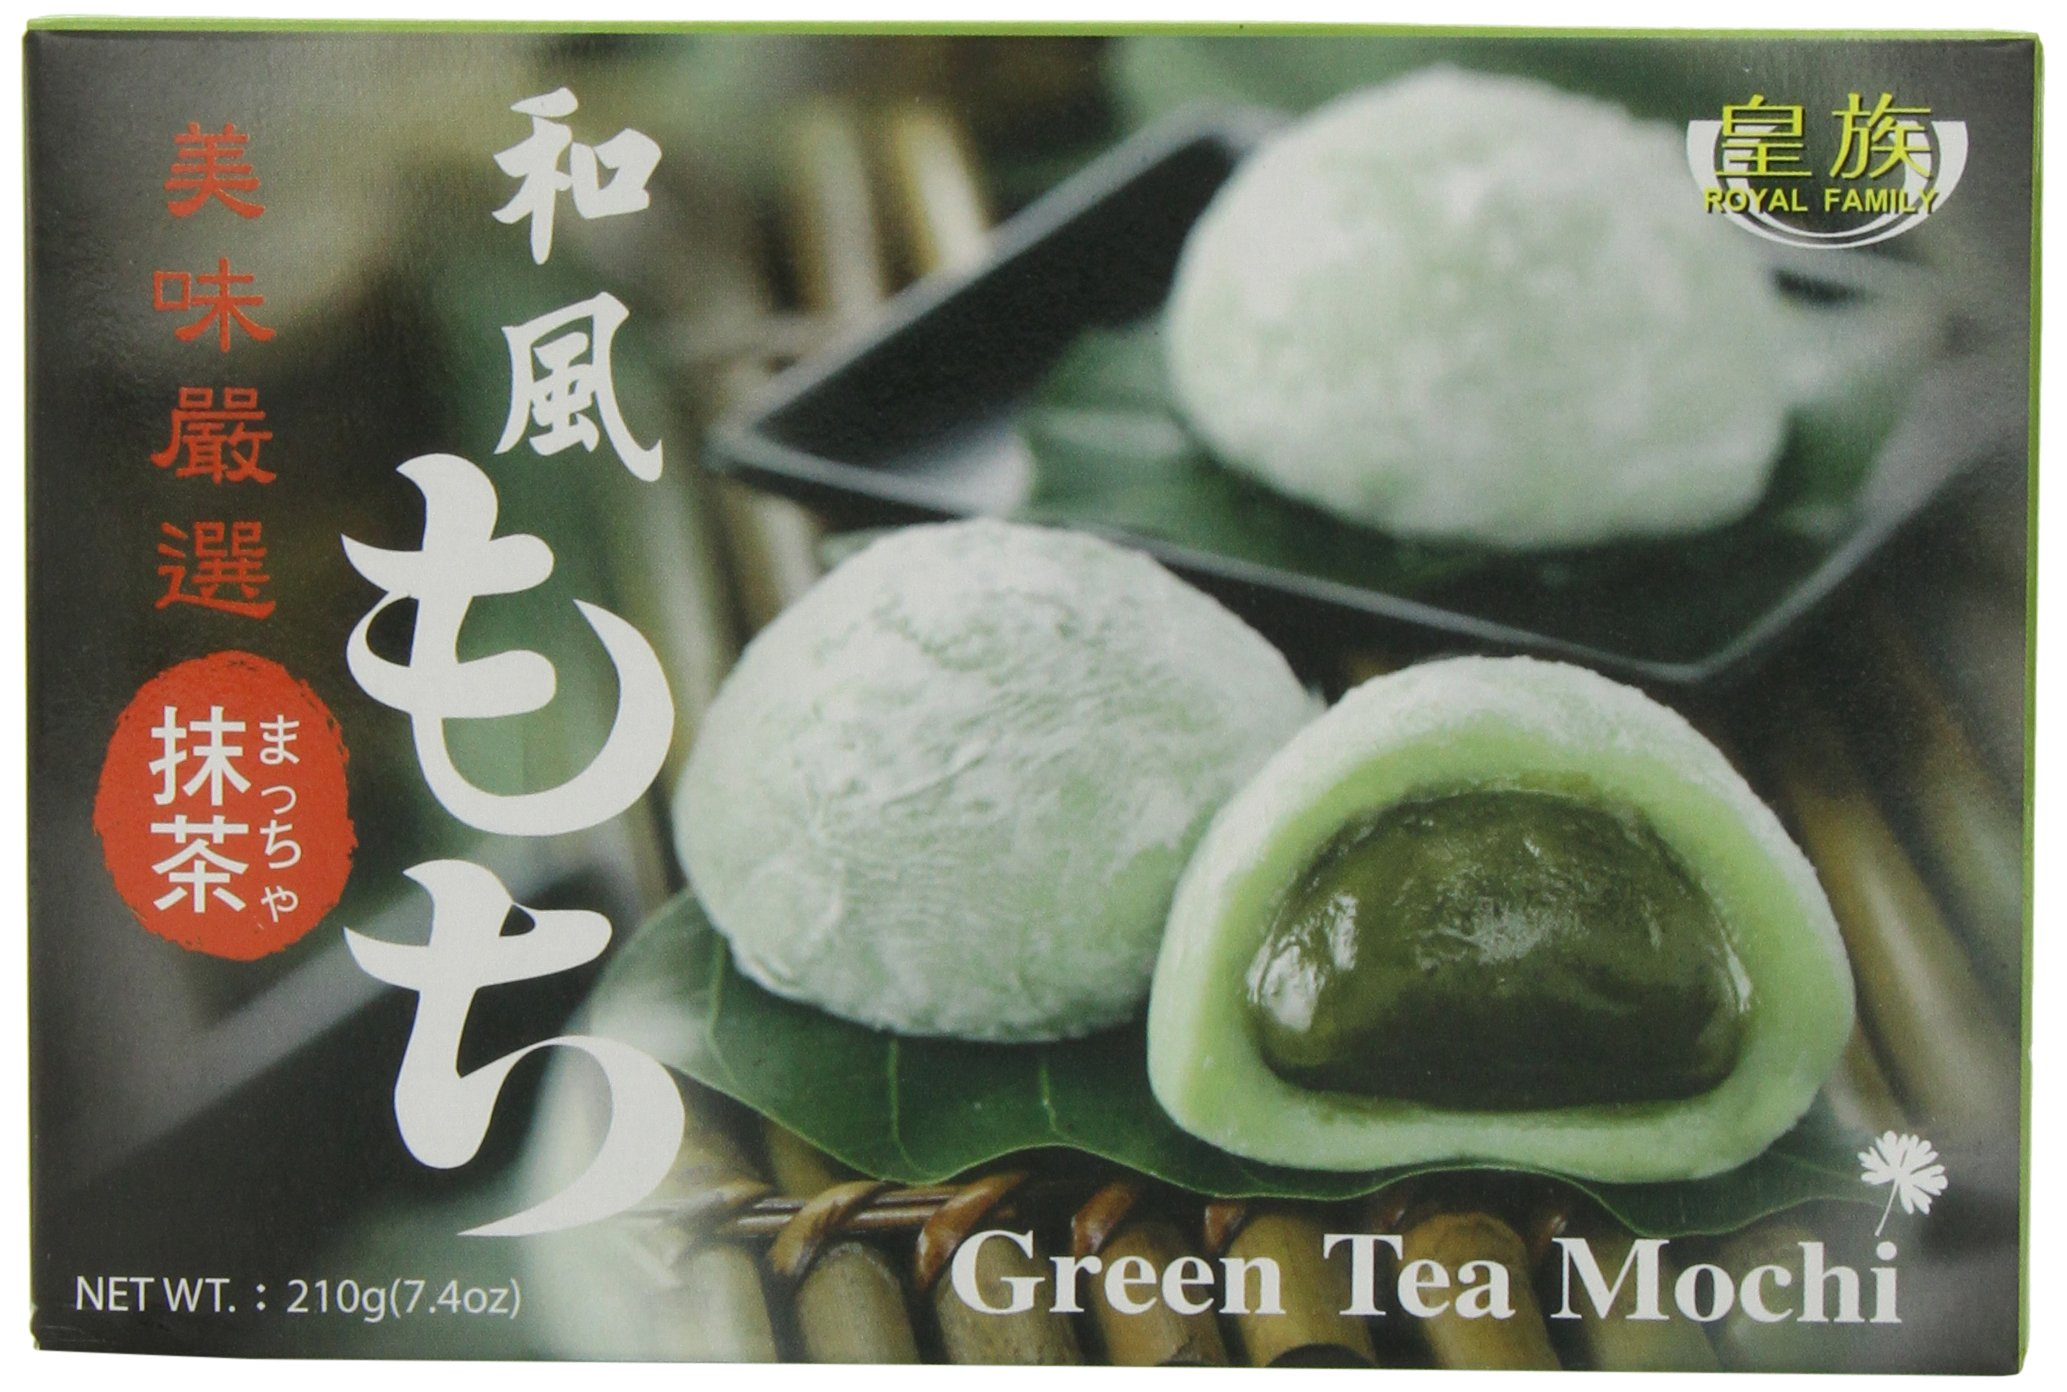 Royal Family Japanese Mochi Green Tea, 7.4-Ounce (Pack of 8) by Royal Family